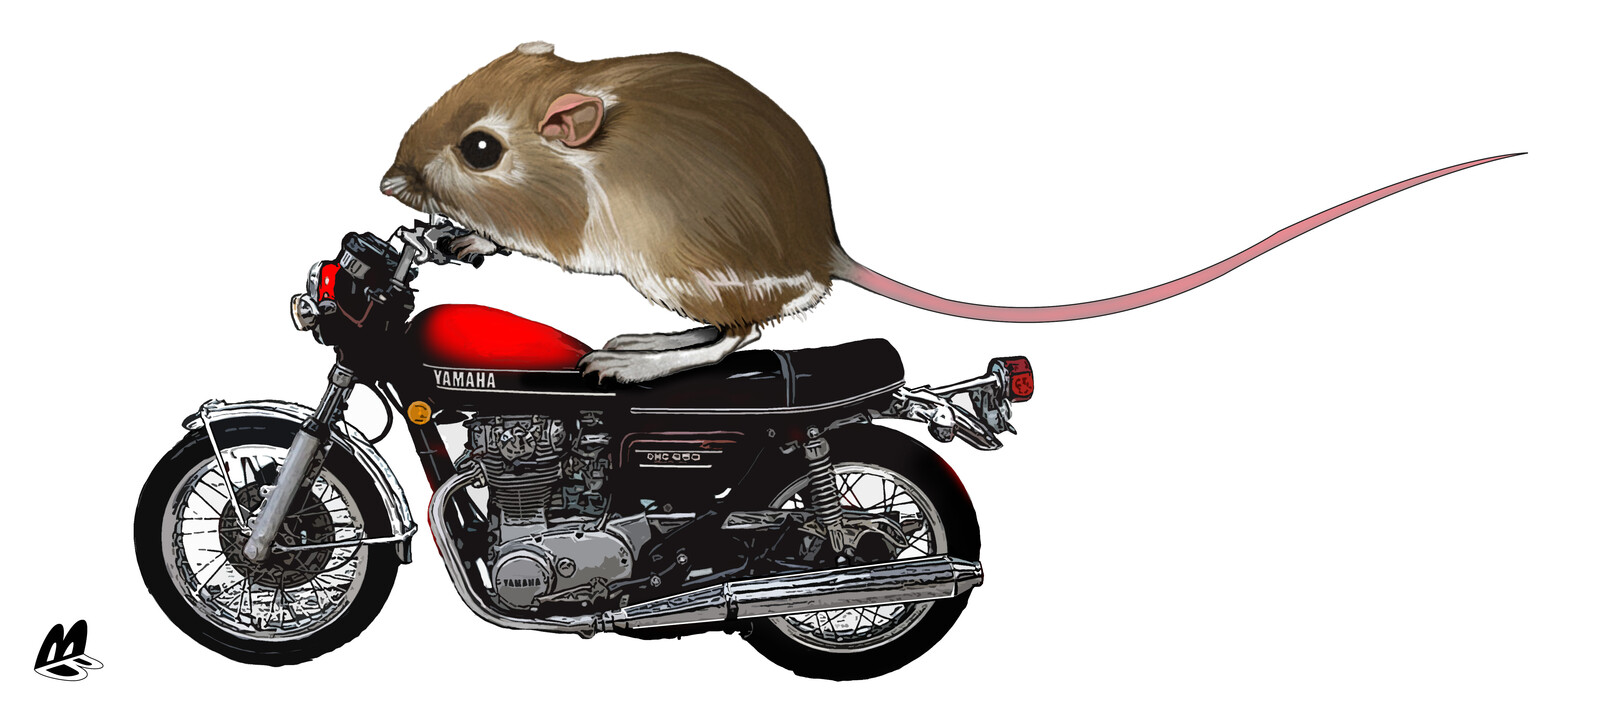 A Mouse on a motorcycle